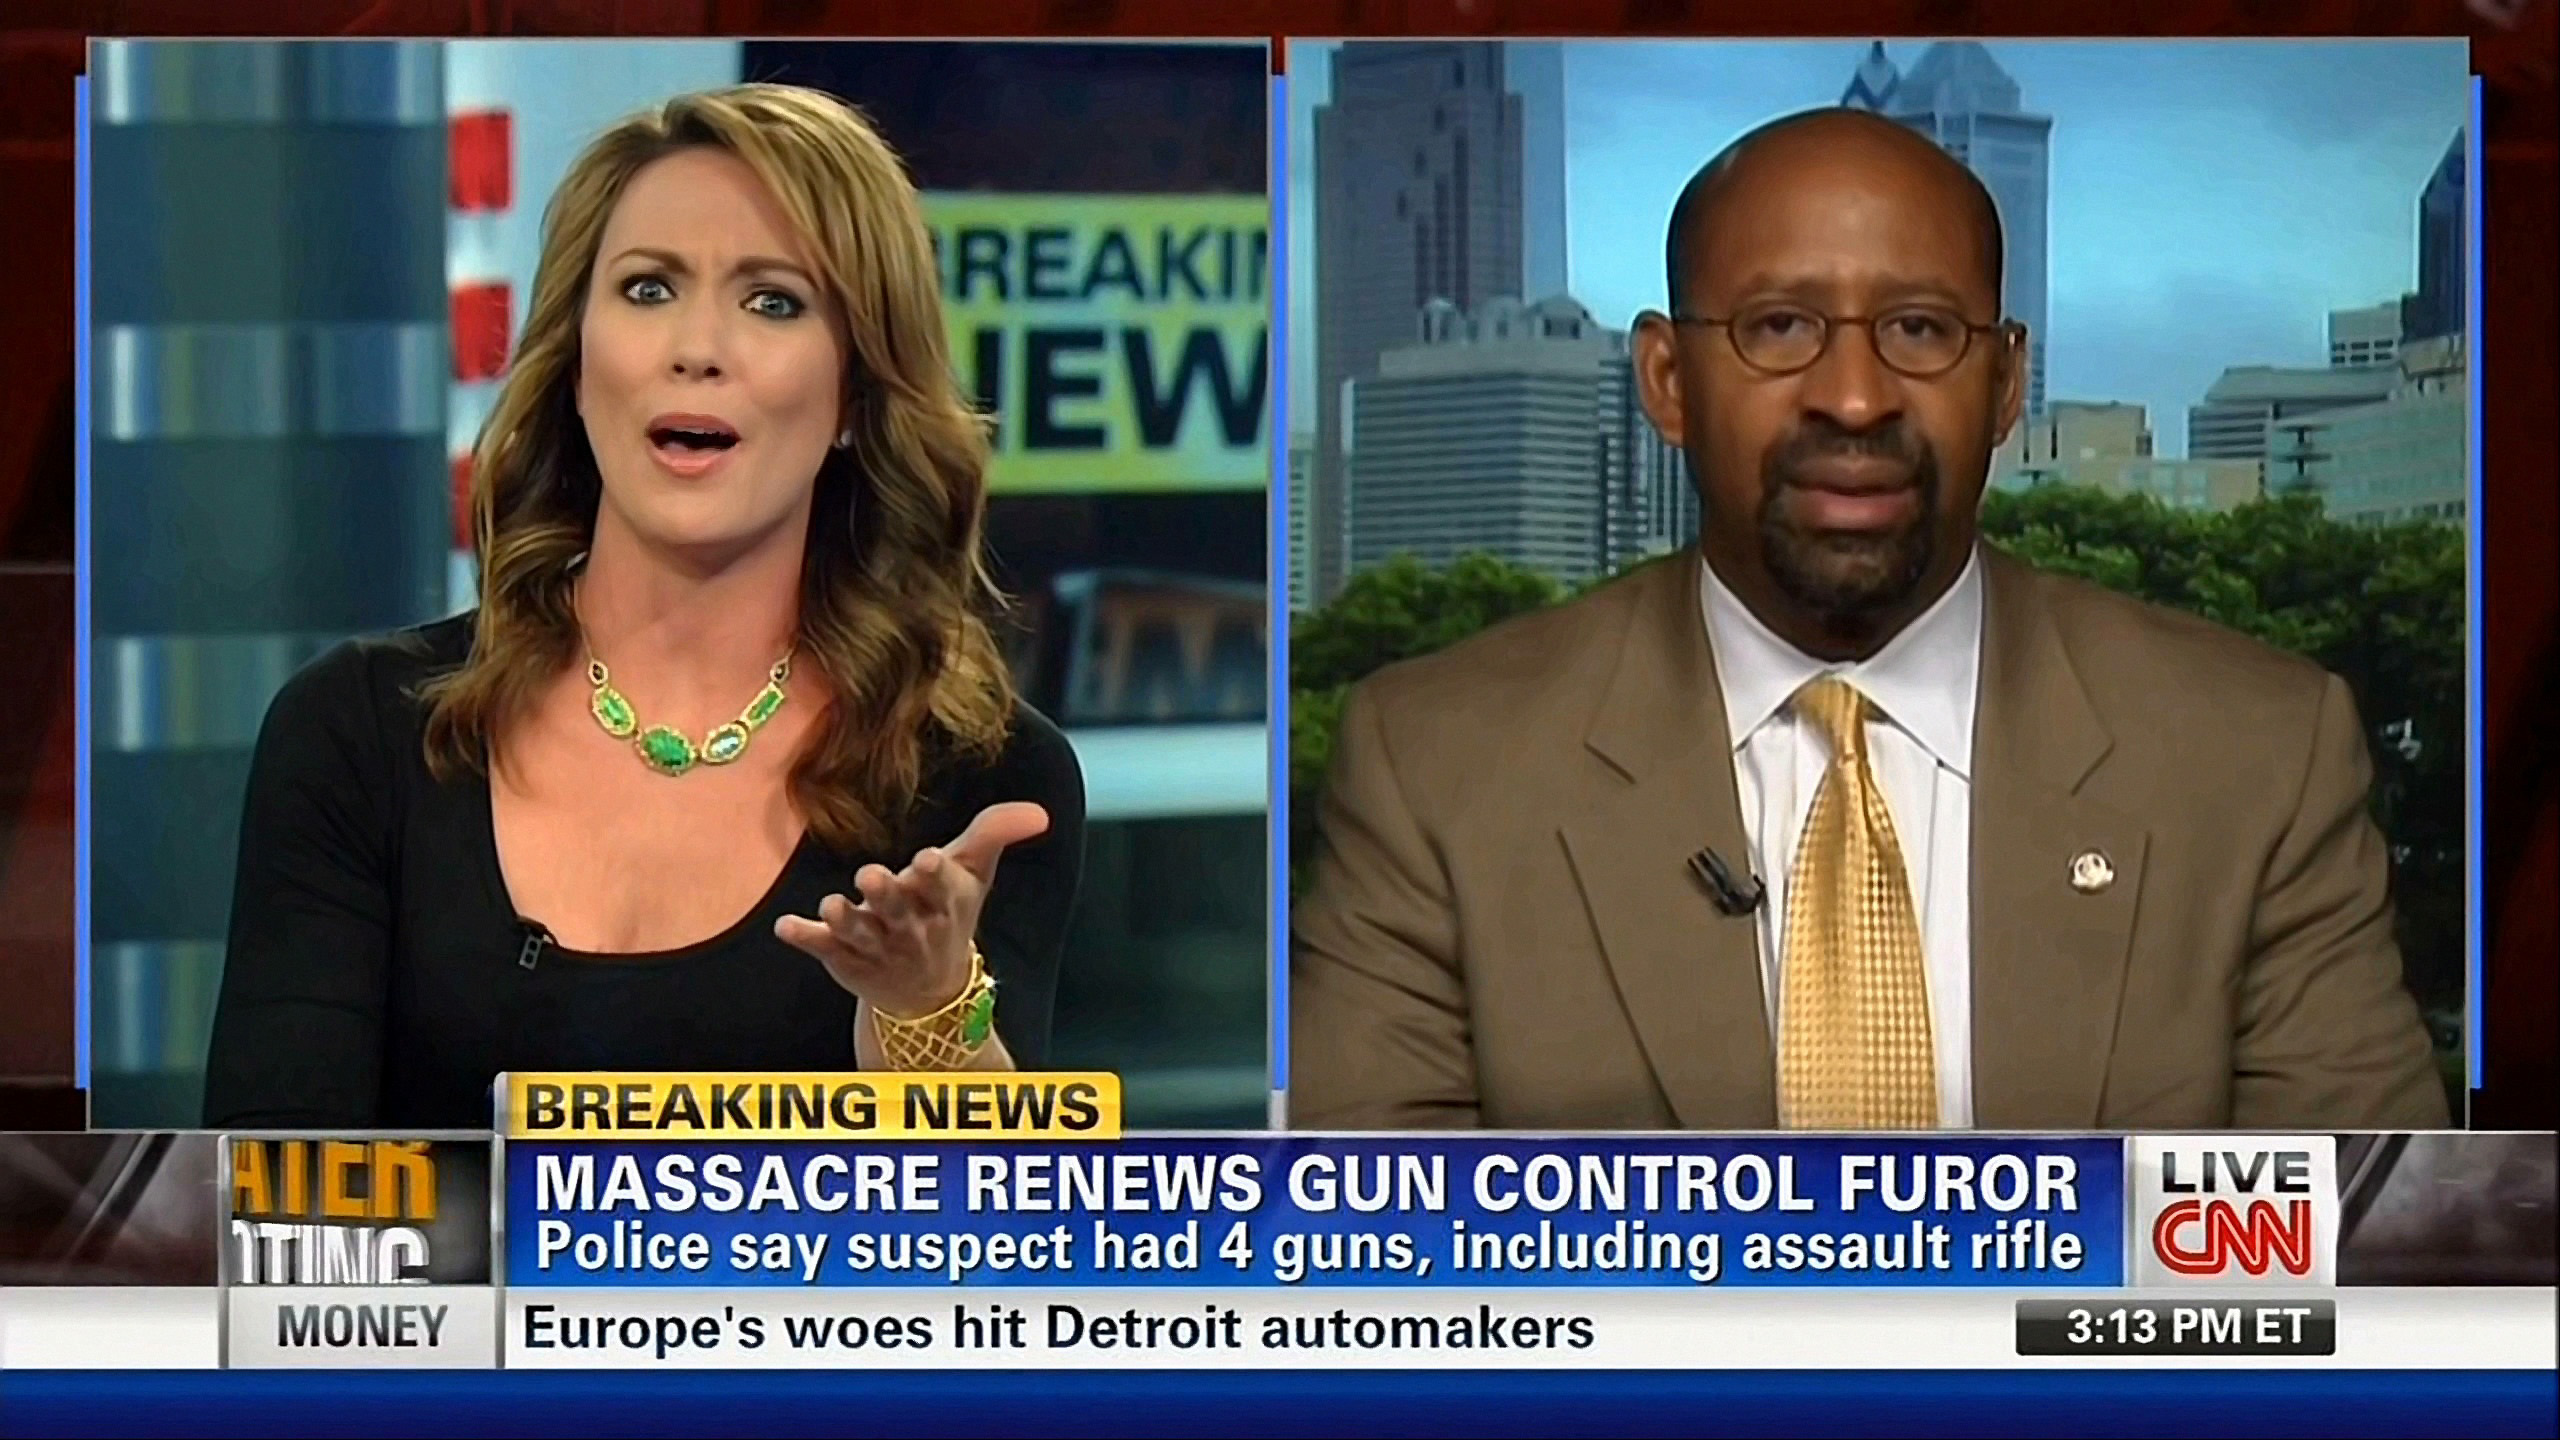 CNN World News Picture: CNN Uses Aurora Shooting To Force Anti-Gun Agenda On Viewers